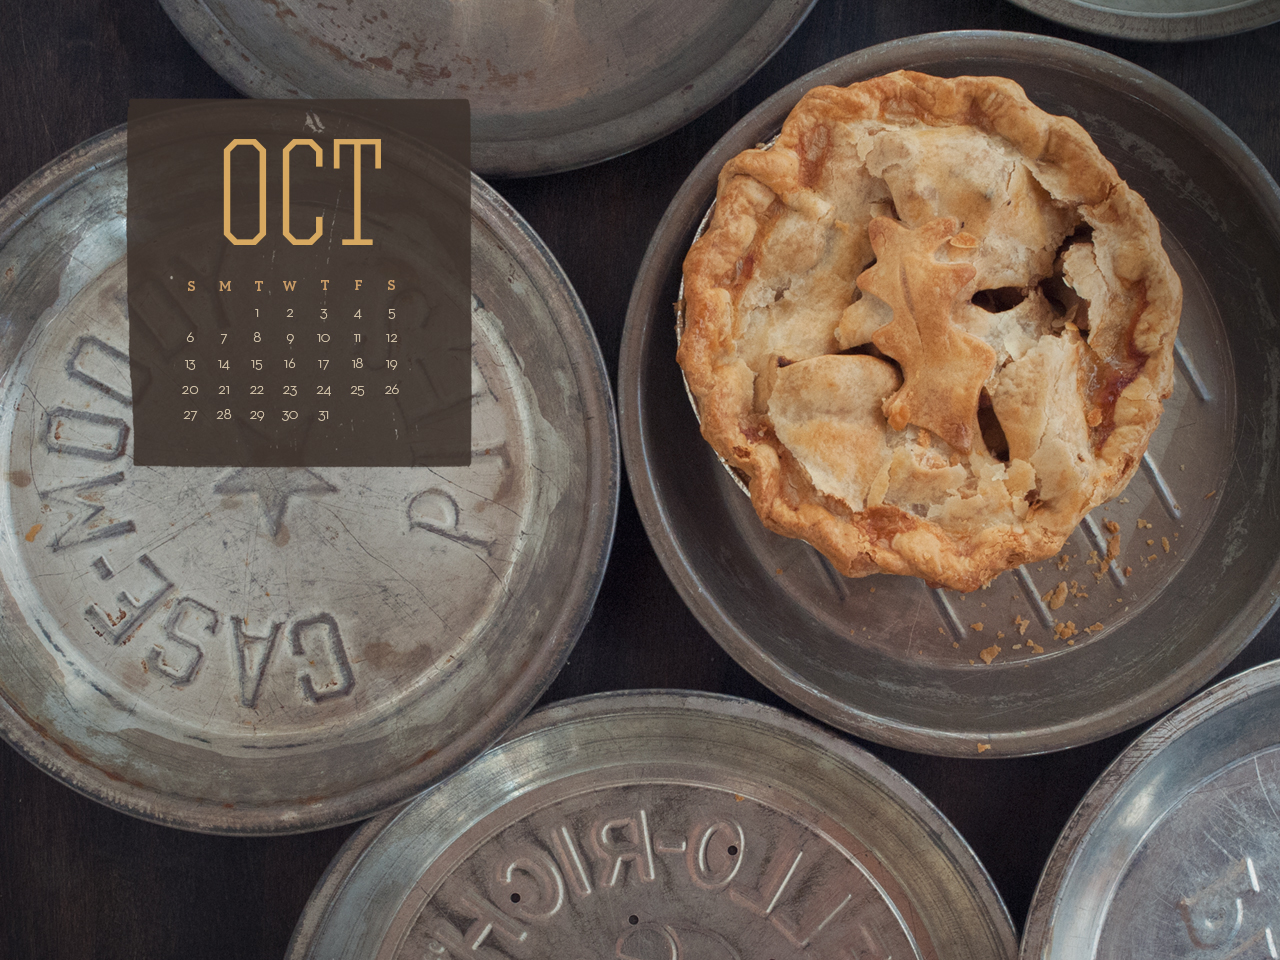 Free October 2013 Desktop Calendar- Apple Pie Time